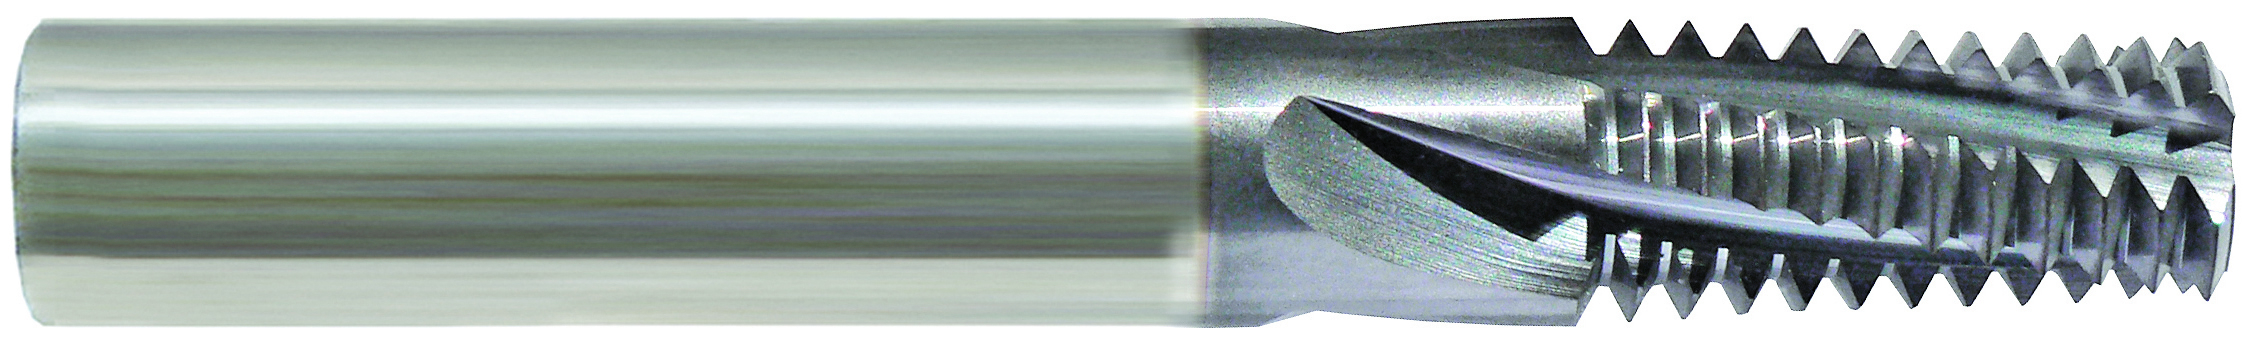 M4.5-0.75 MC SOLID CARBIDE THREAD MILL